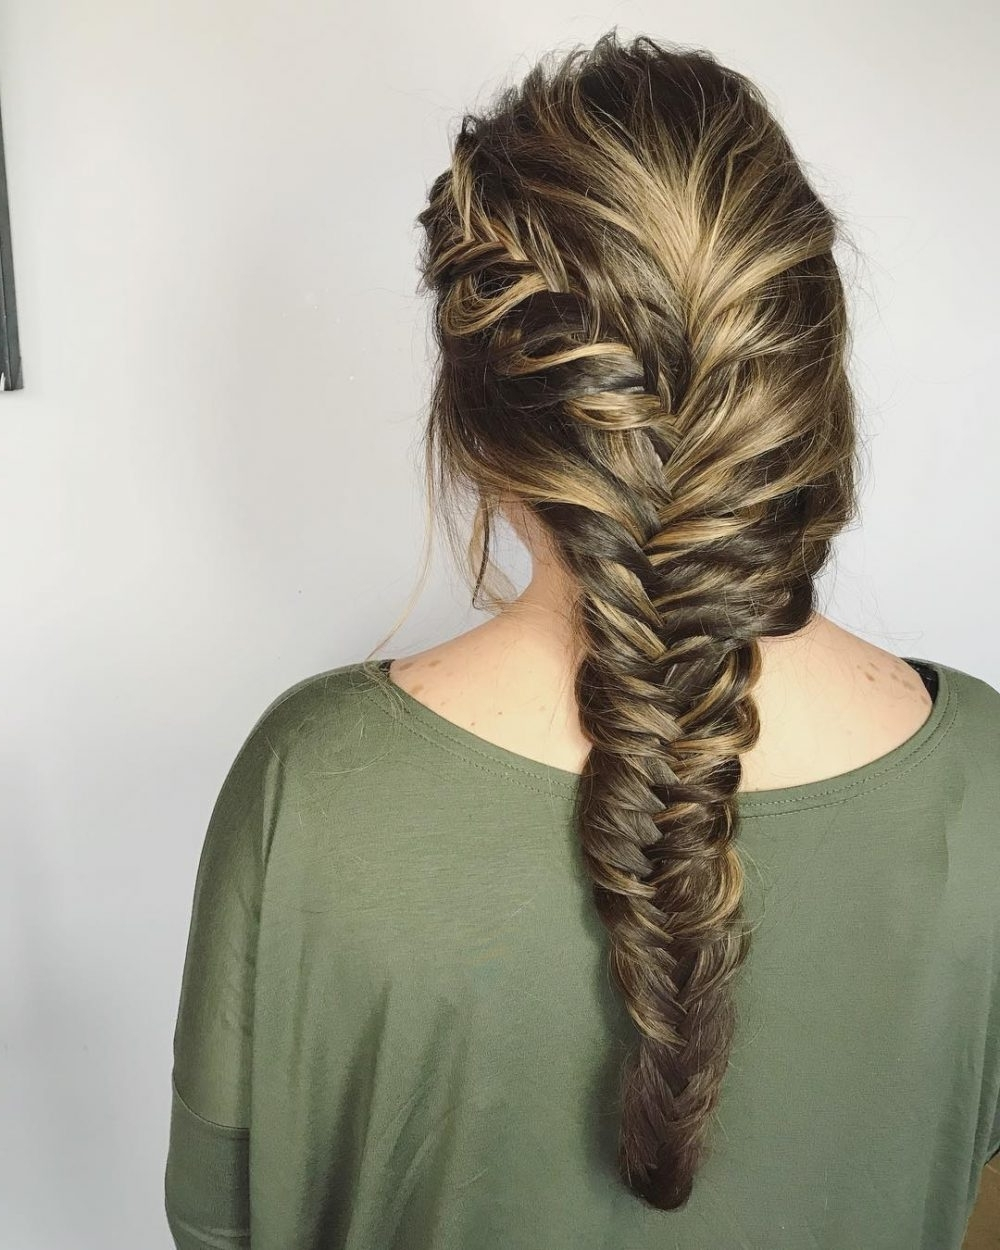 Famous Loosely Braided Ponytail Hairstyles Intended For 38 Cute Prom Hairstyles Guaranteed To Turn Heads (View 9 of 20)